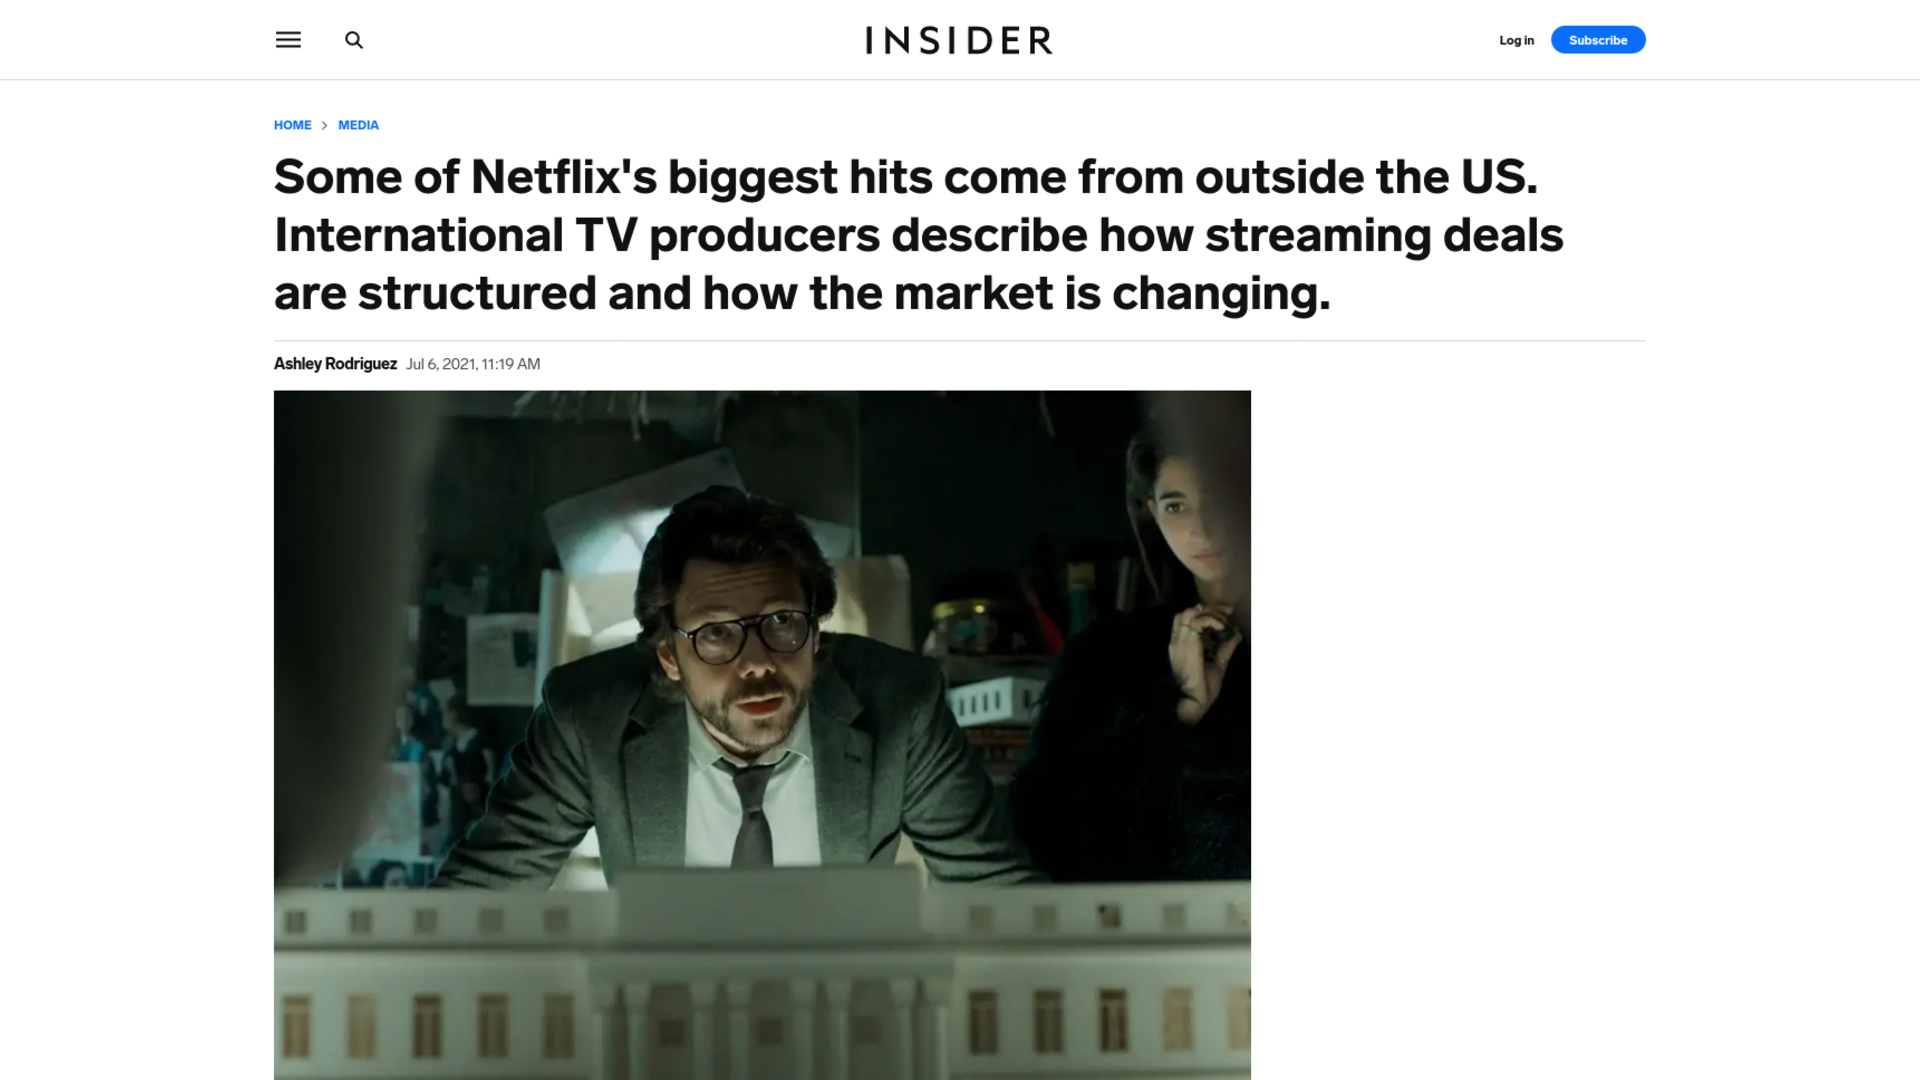 Fairness Rocks News Some of Netflix's biggest hits come from outside the US. International TV producers describe how streaming deals are structured and how the market is changing.